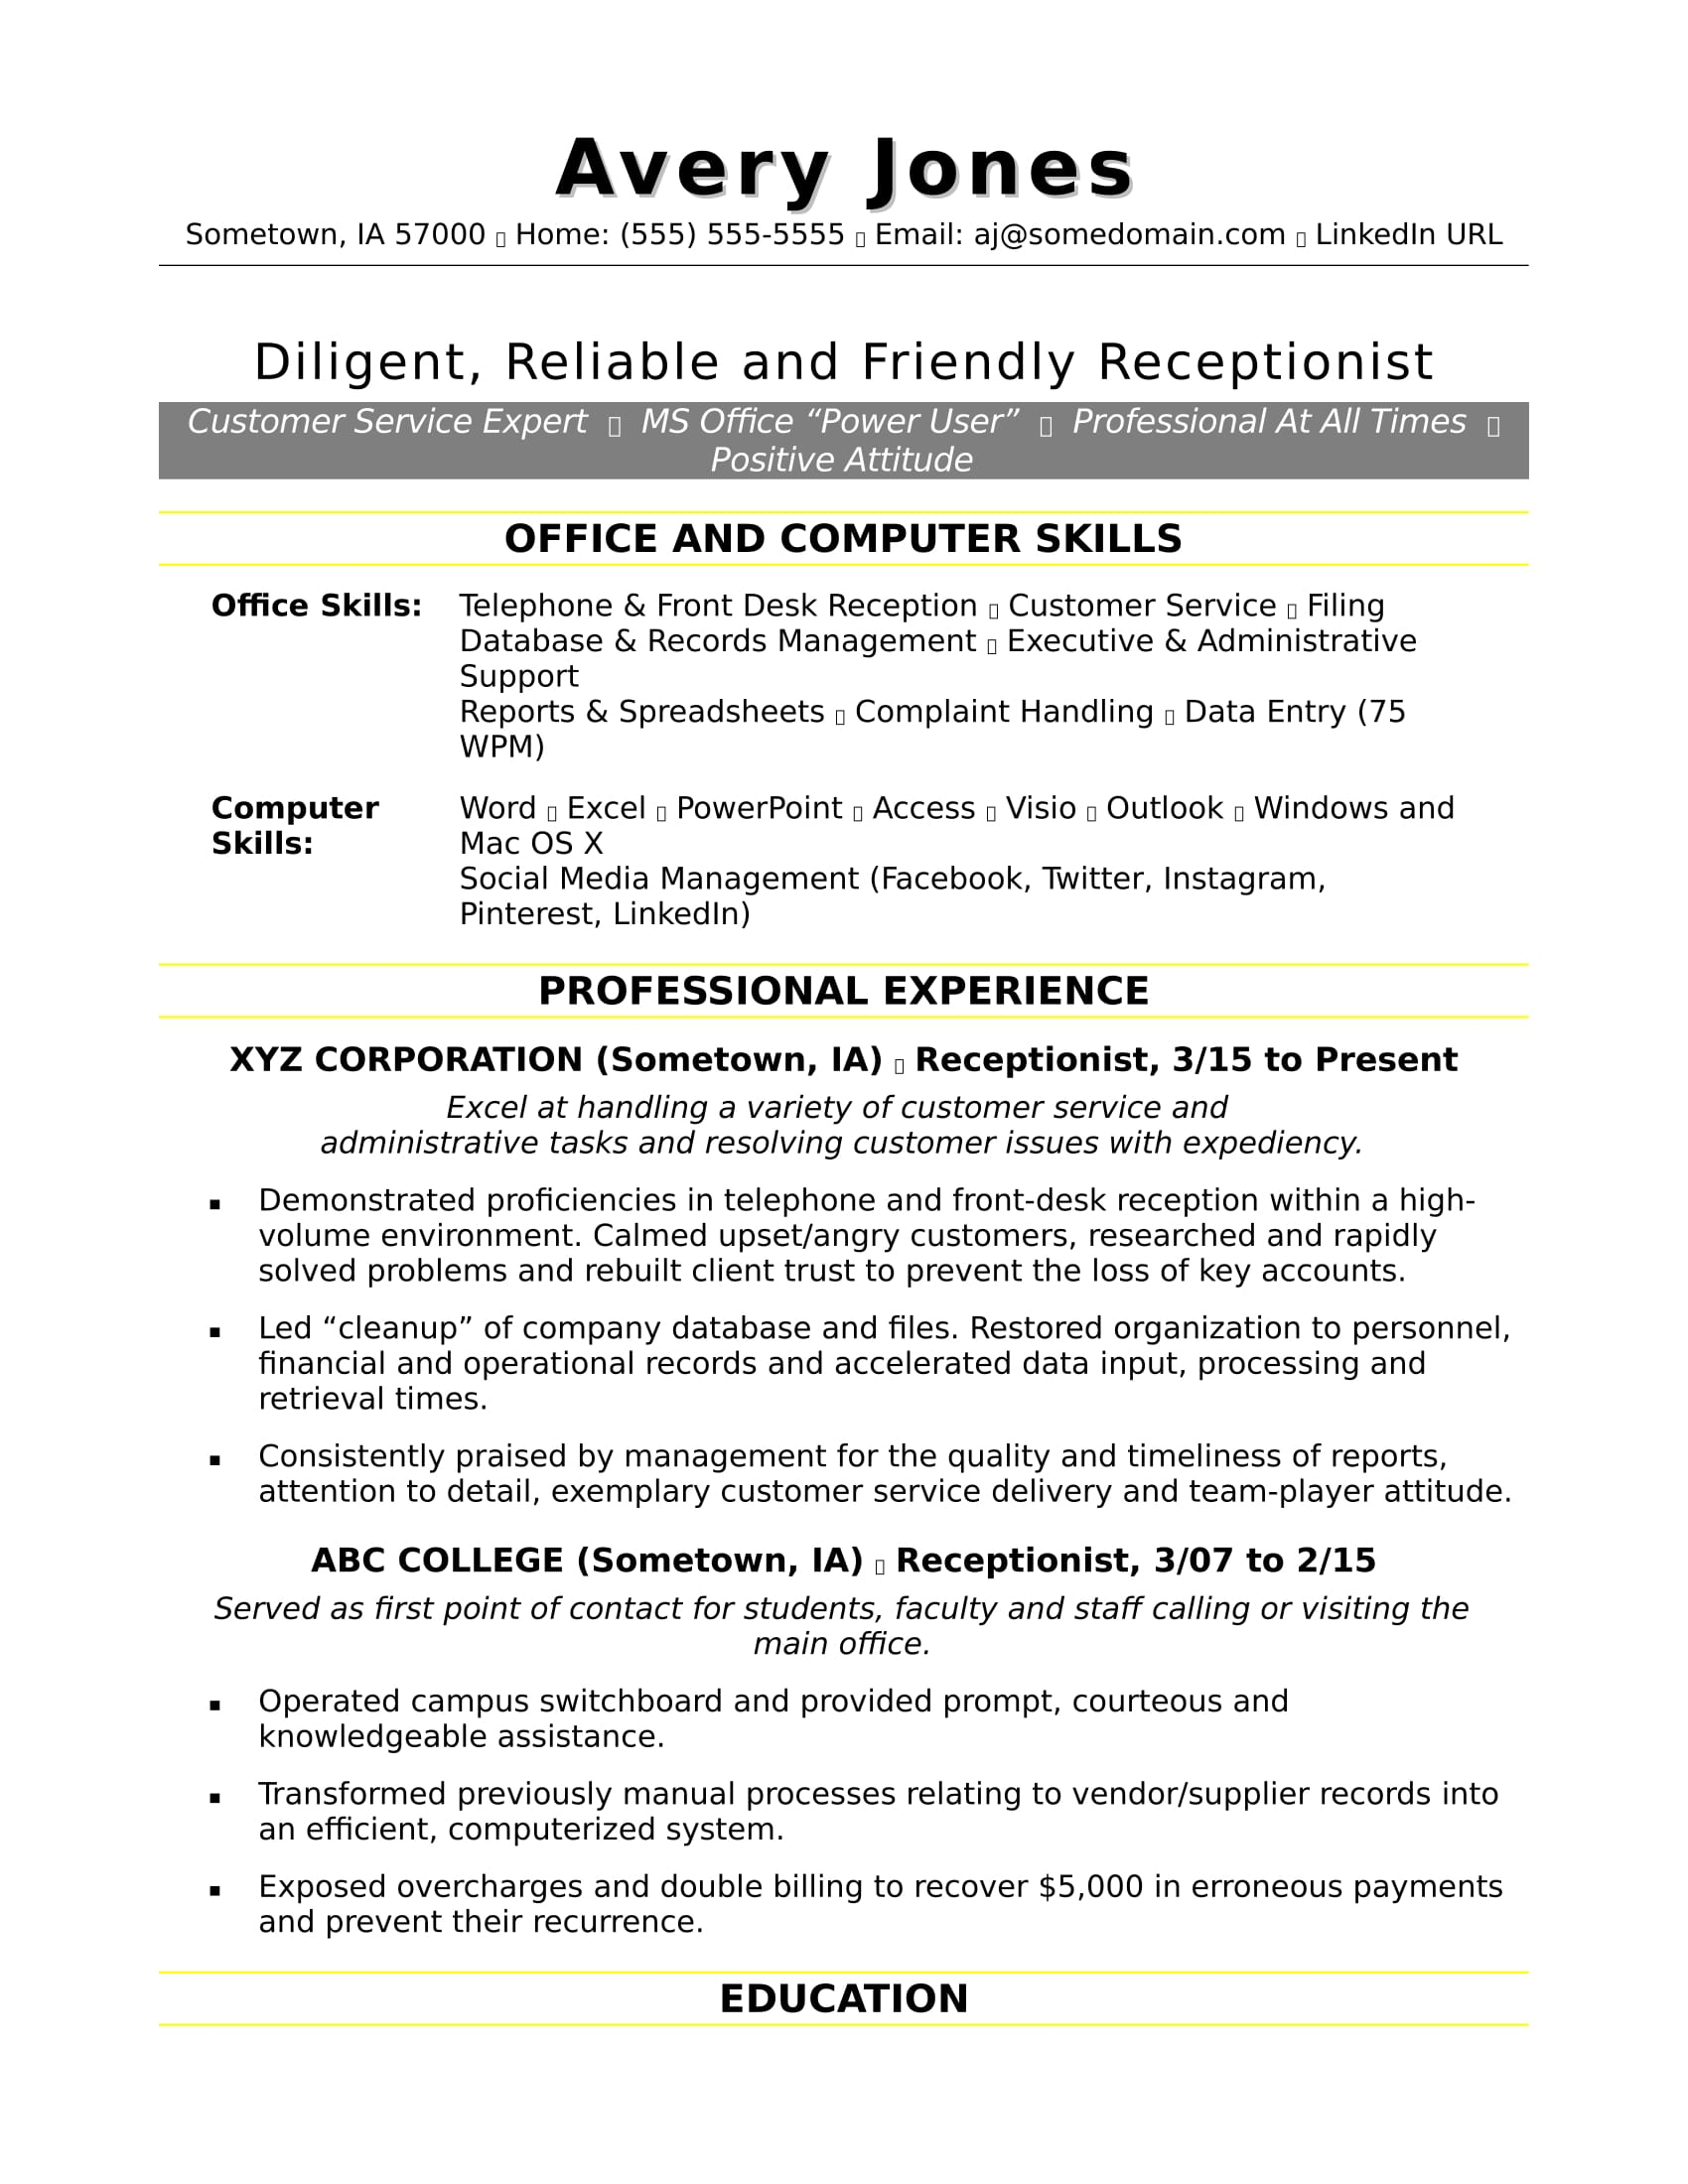 Enchanting Resume Skill Words Ideas Resume Template Samples